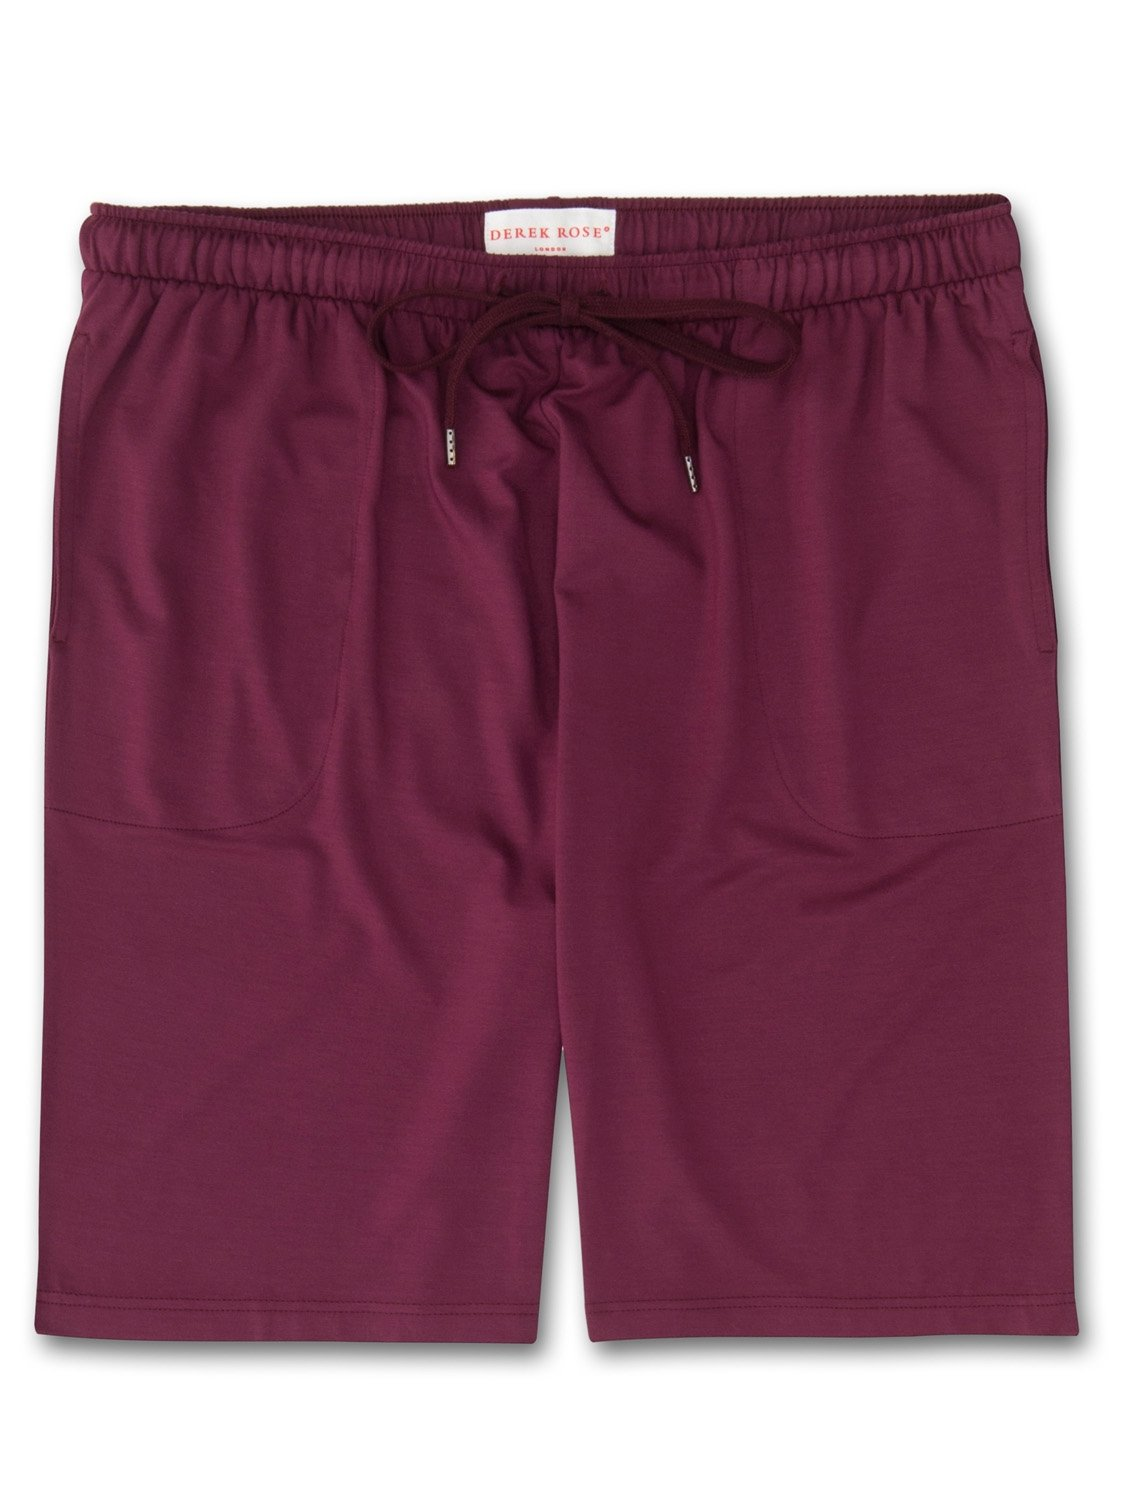 Men's Jersey Shorts Basel 5 Micro Modal Stretch Burgundy